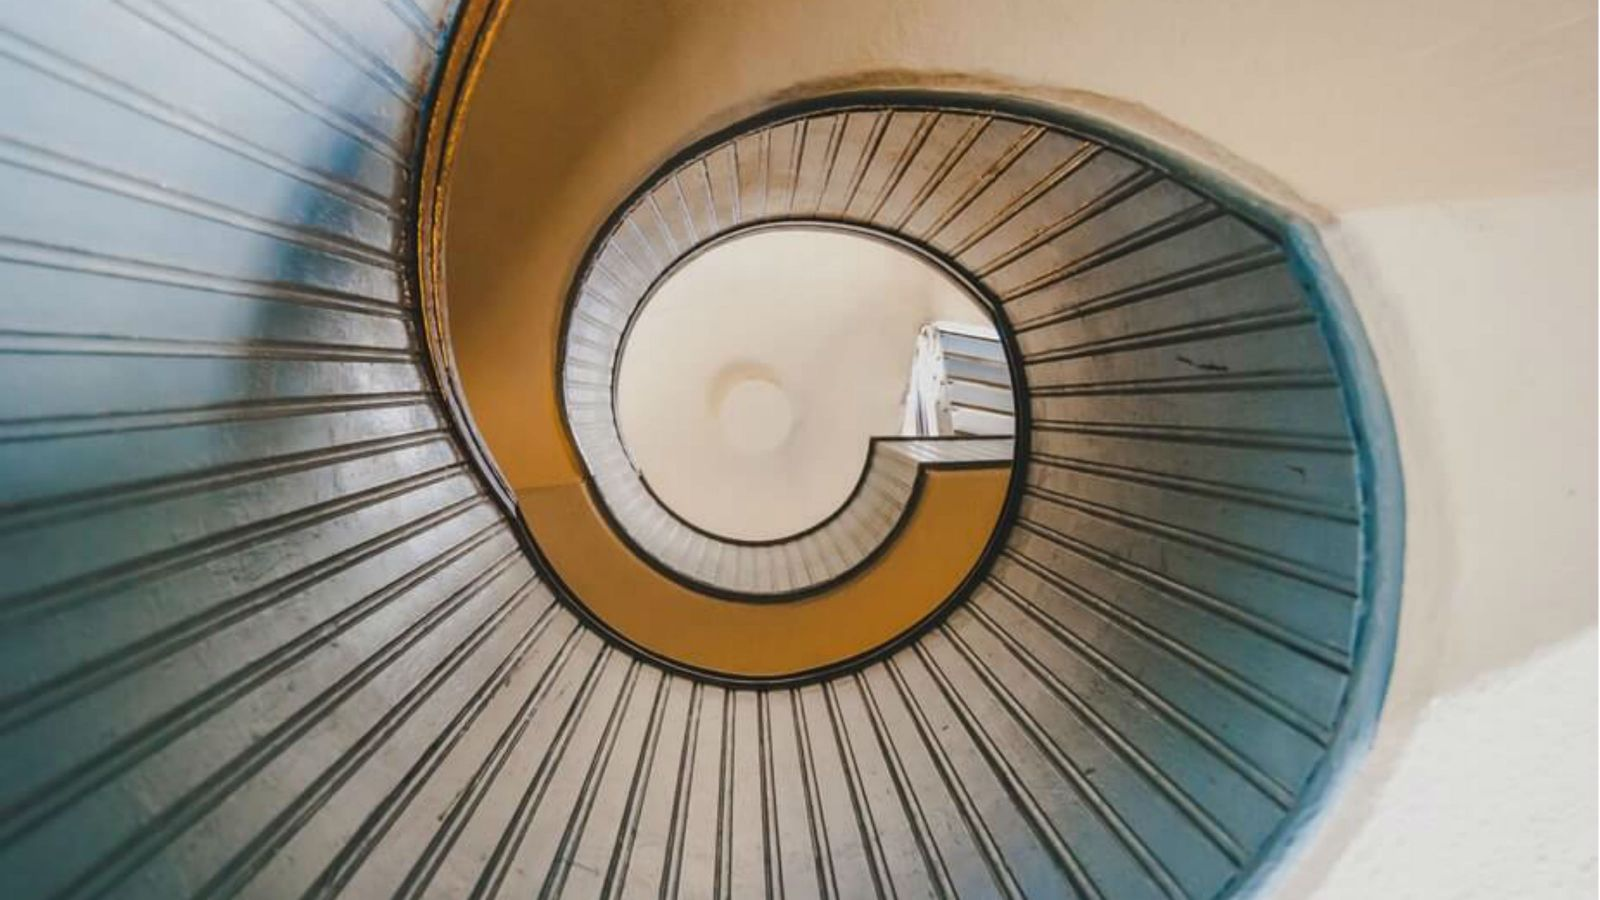 Underside view of a spiral staircase.